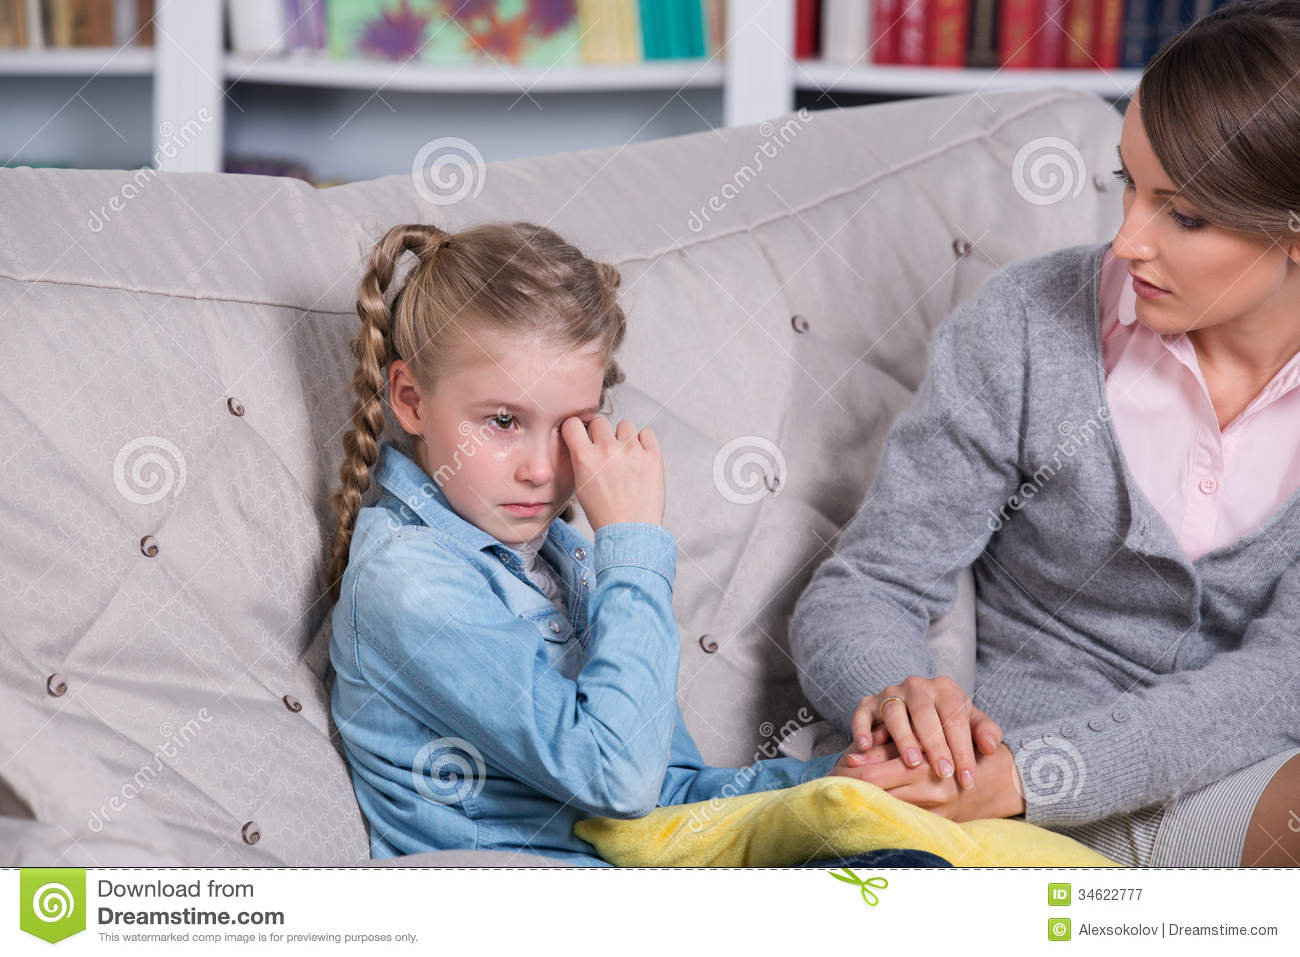 Child Psychologist With A Little Girl Royalty Free Stock